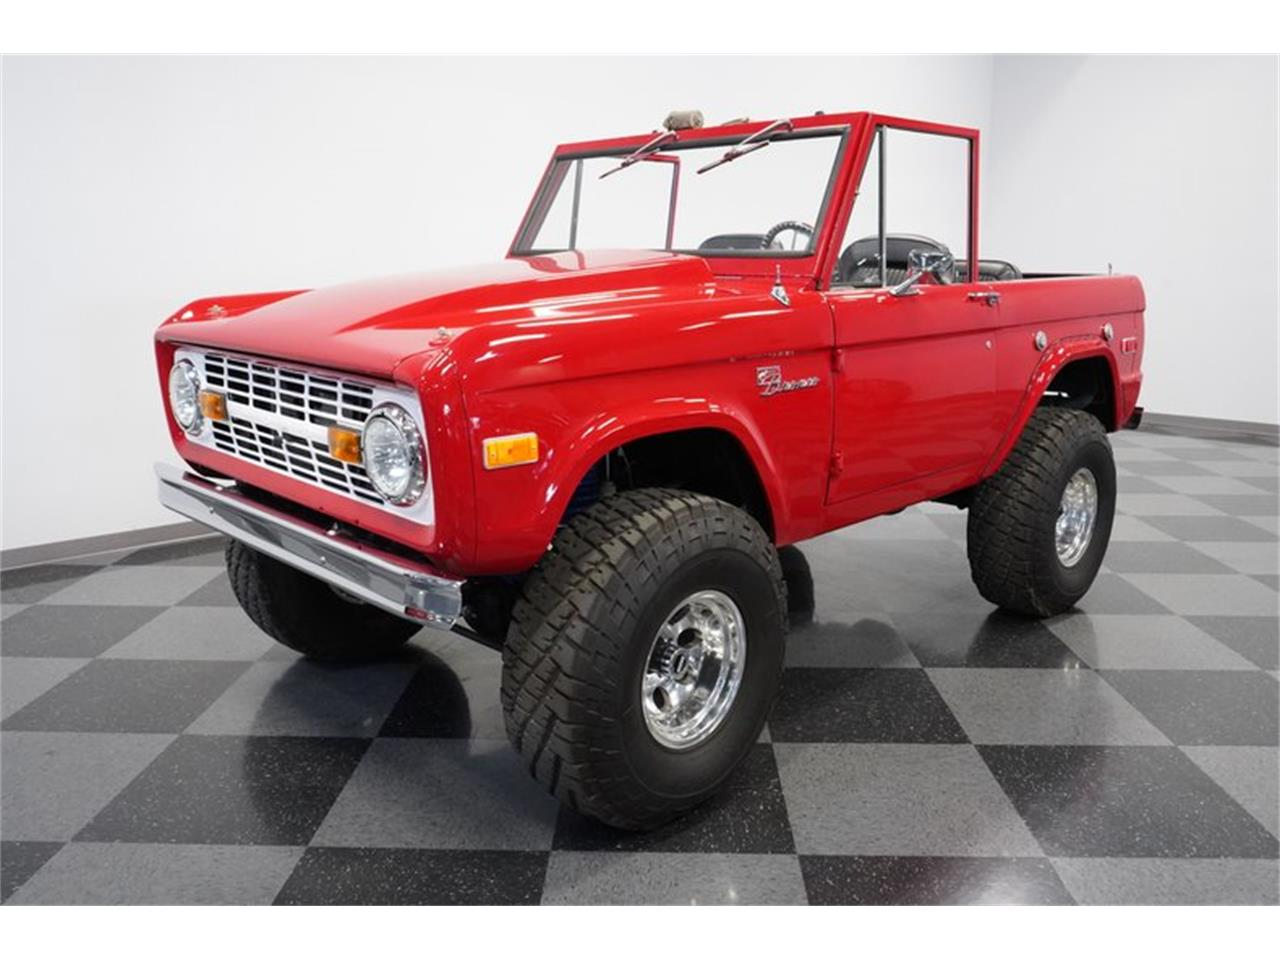 Large Picture of 1975 Ford Bronco located in Mesa Arizona - $43,995.00 - Q516